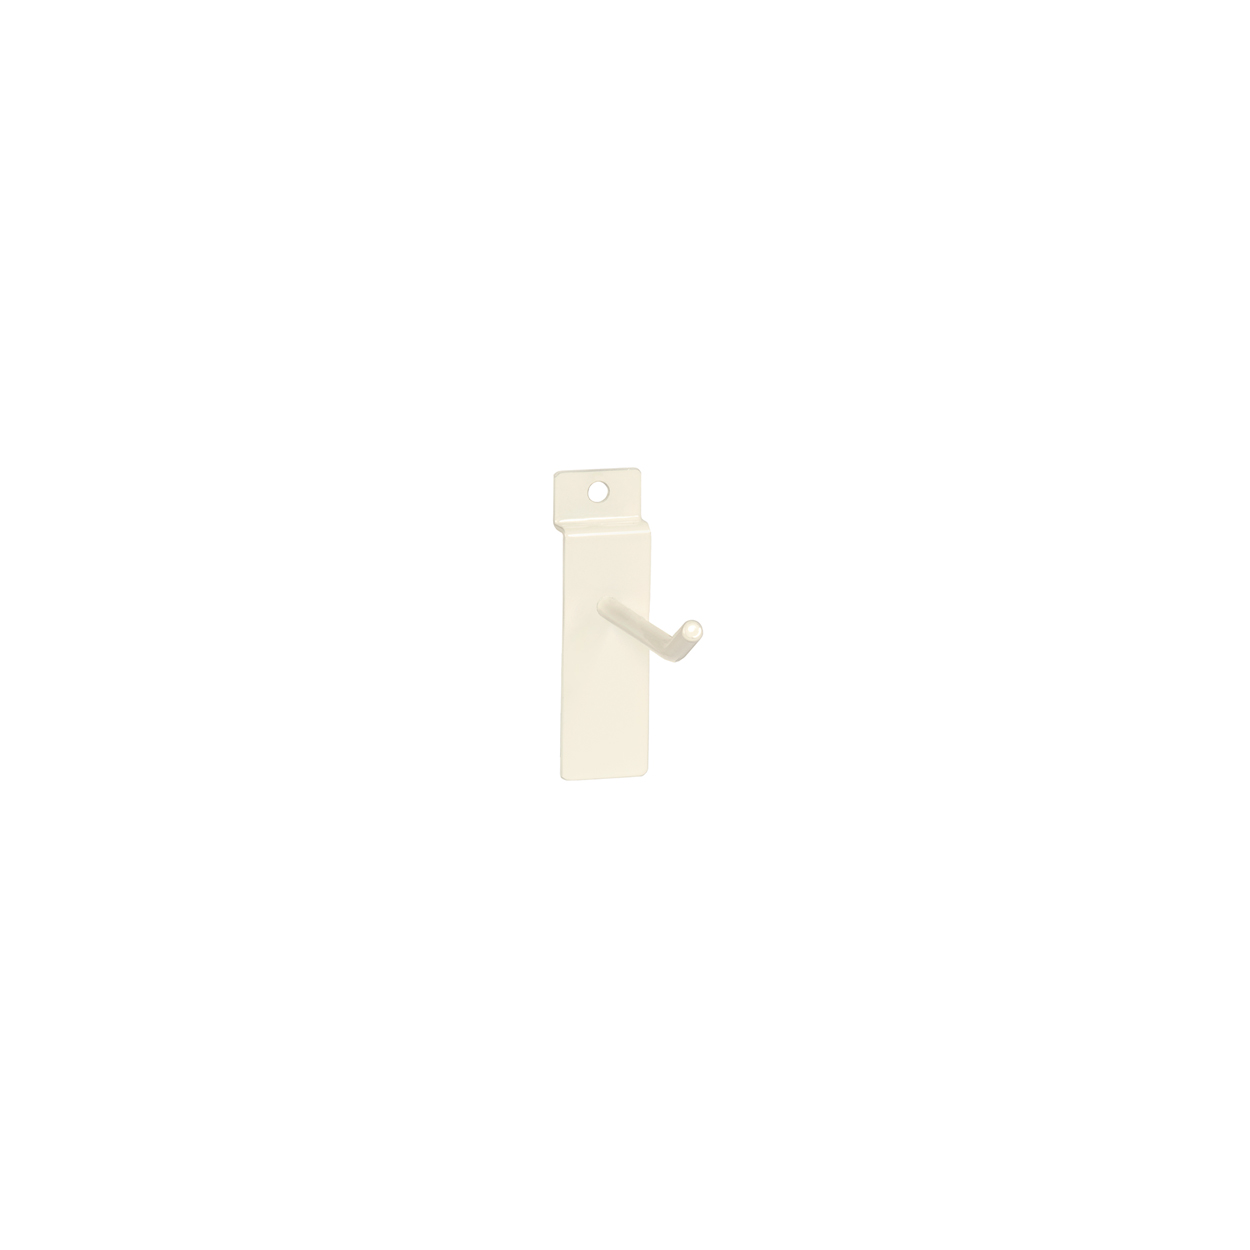 Small White Counter Top Panel Hook. Dim 50L x 5.8mm Diameter